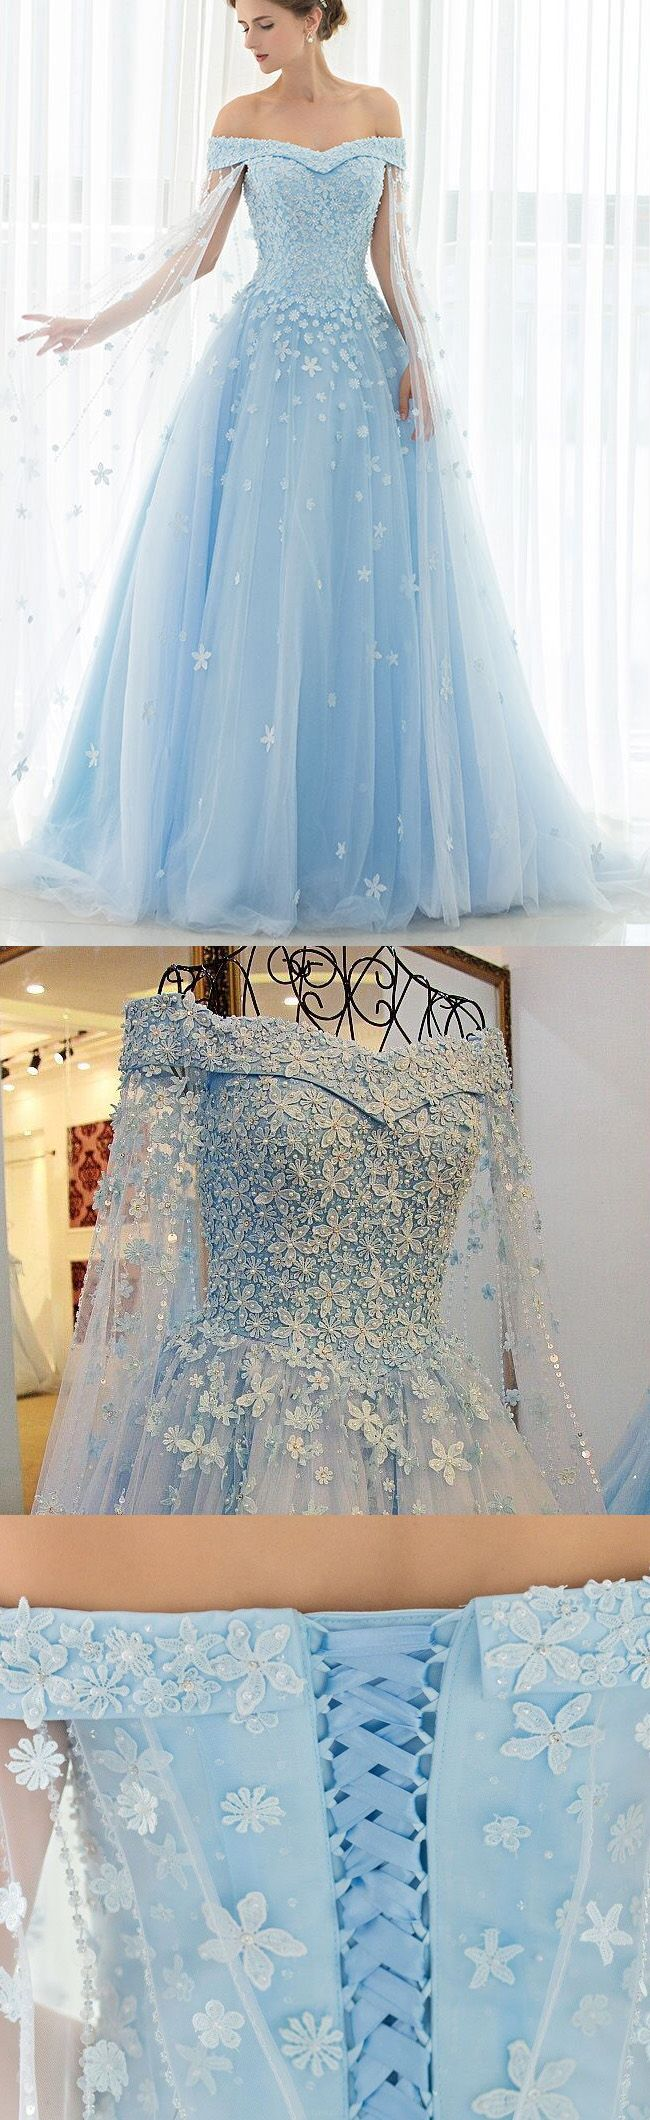 Blue prom dresses long prom dresses lace prom dresses light blue